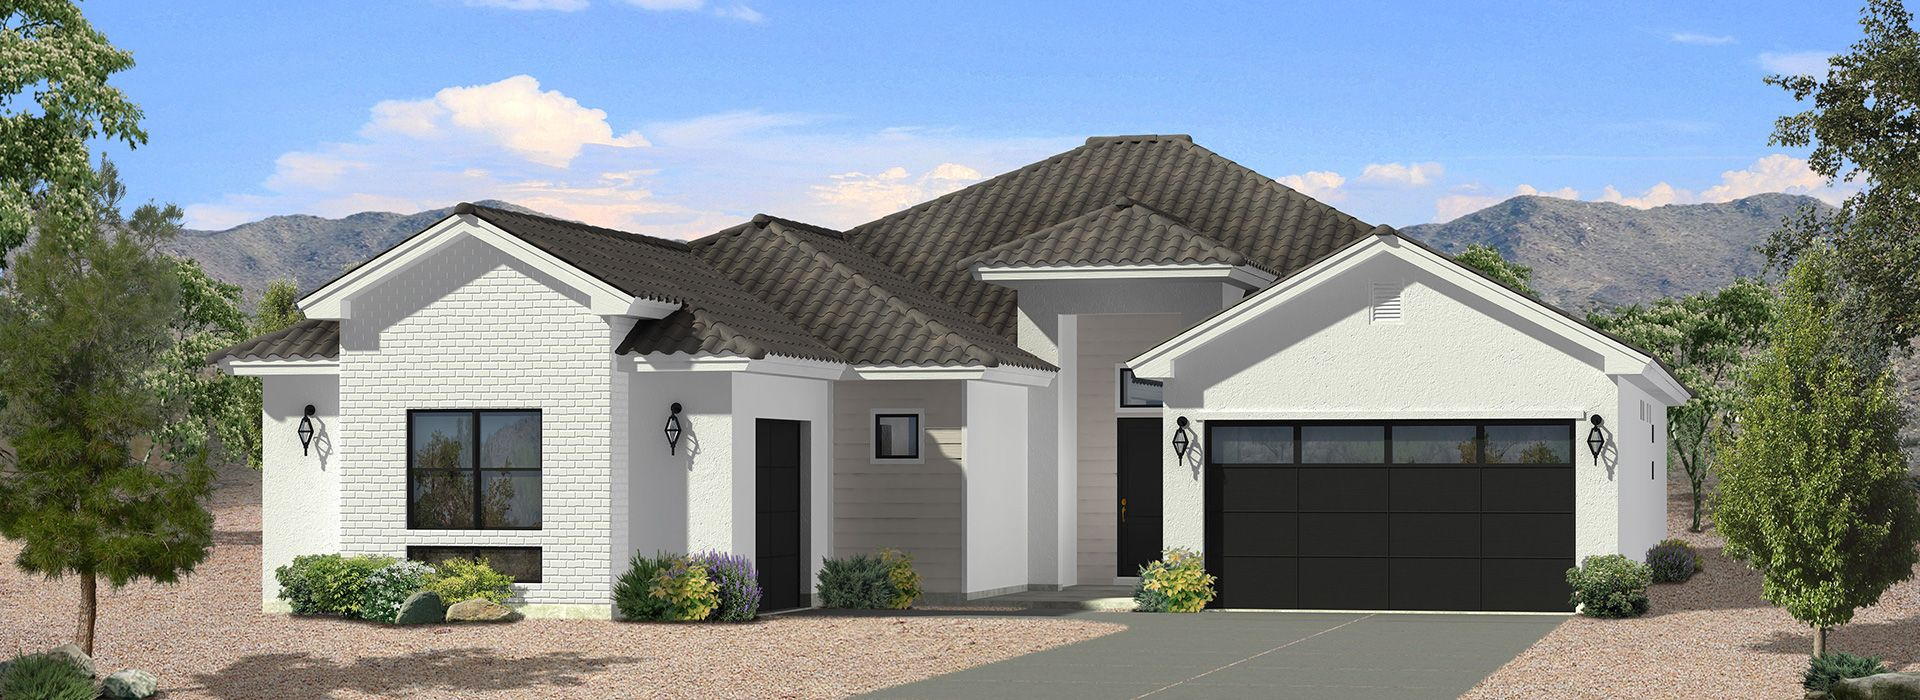 Exterior featured in the Azalea By Carefree Homes Utah in St. George, UT